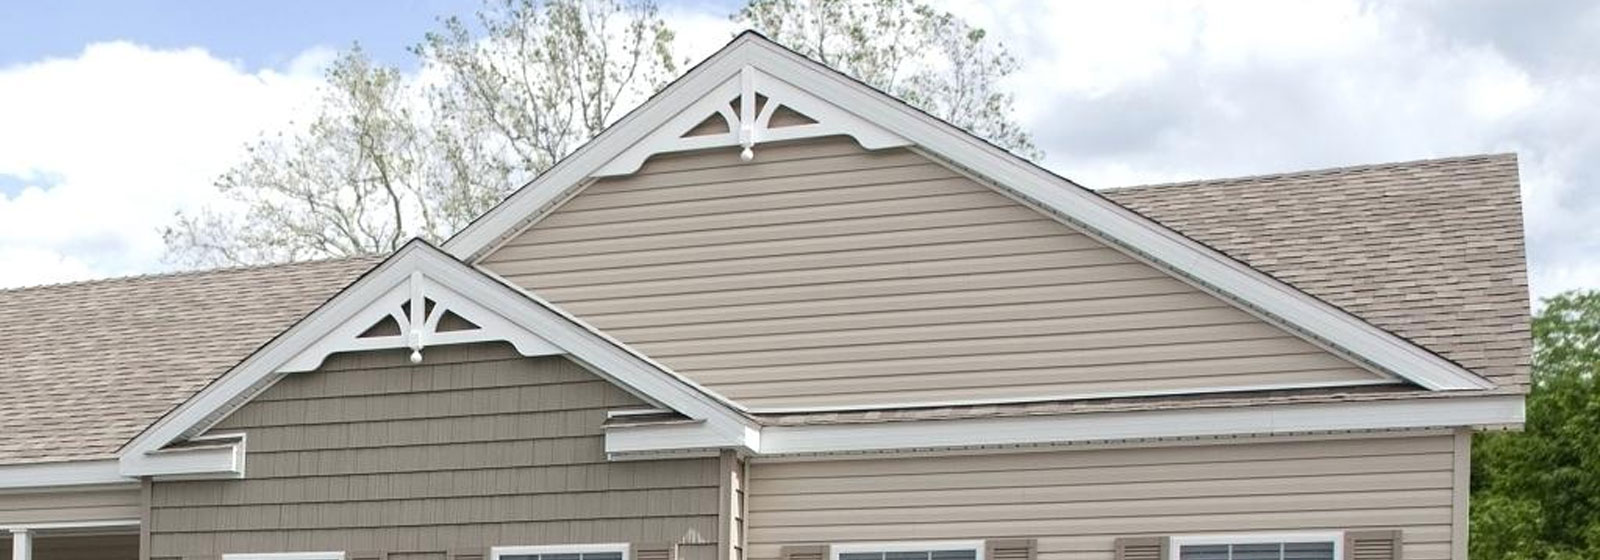 PVC Gable Pediments